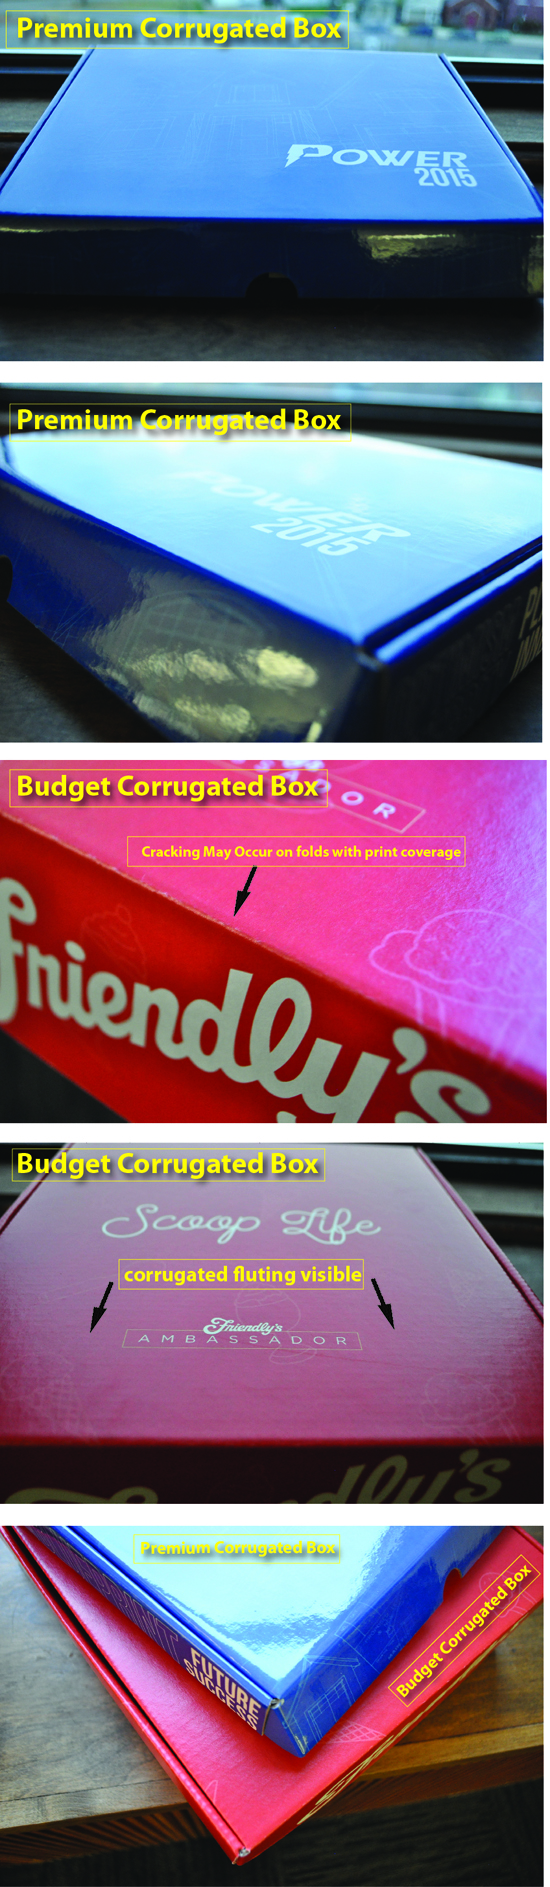 Premium vs Budget Corrugated boxes